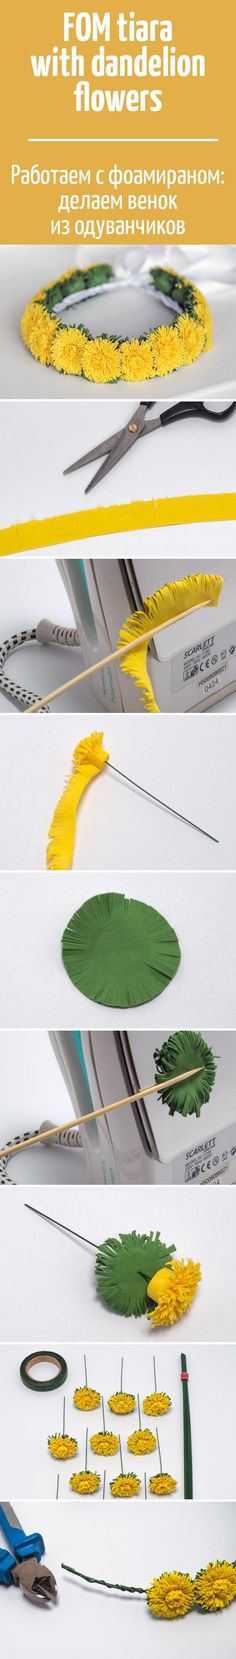 Como fazer Tiaras com flores artificiais Делем венок из одуванчиков / FOM tiara with dandelion flowers Crepe Paper Flowers, Felt Flowers, Diy Flowers, Fabric Flowers, Felt Crafts, Diy And Crafts, Diy Paper, Paper Crafts, Origami